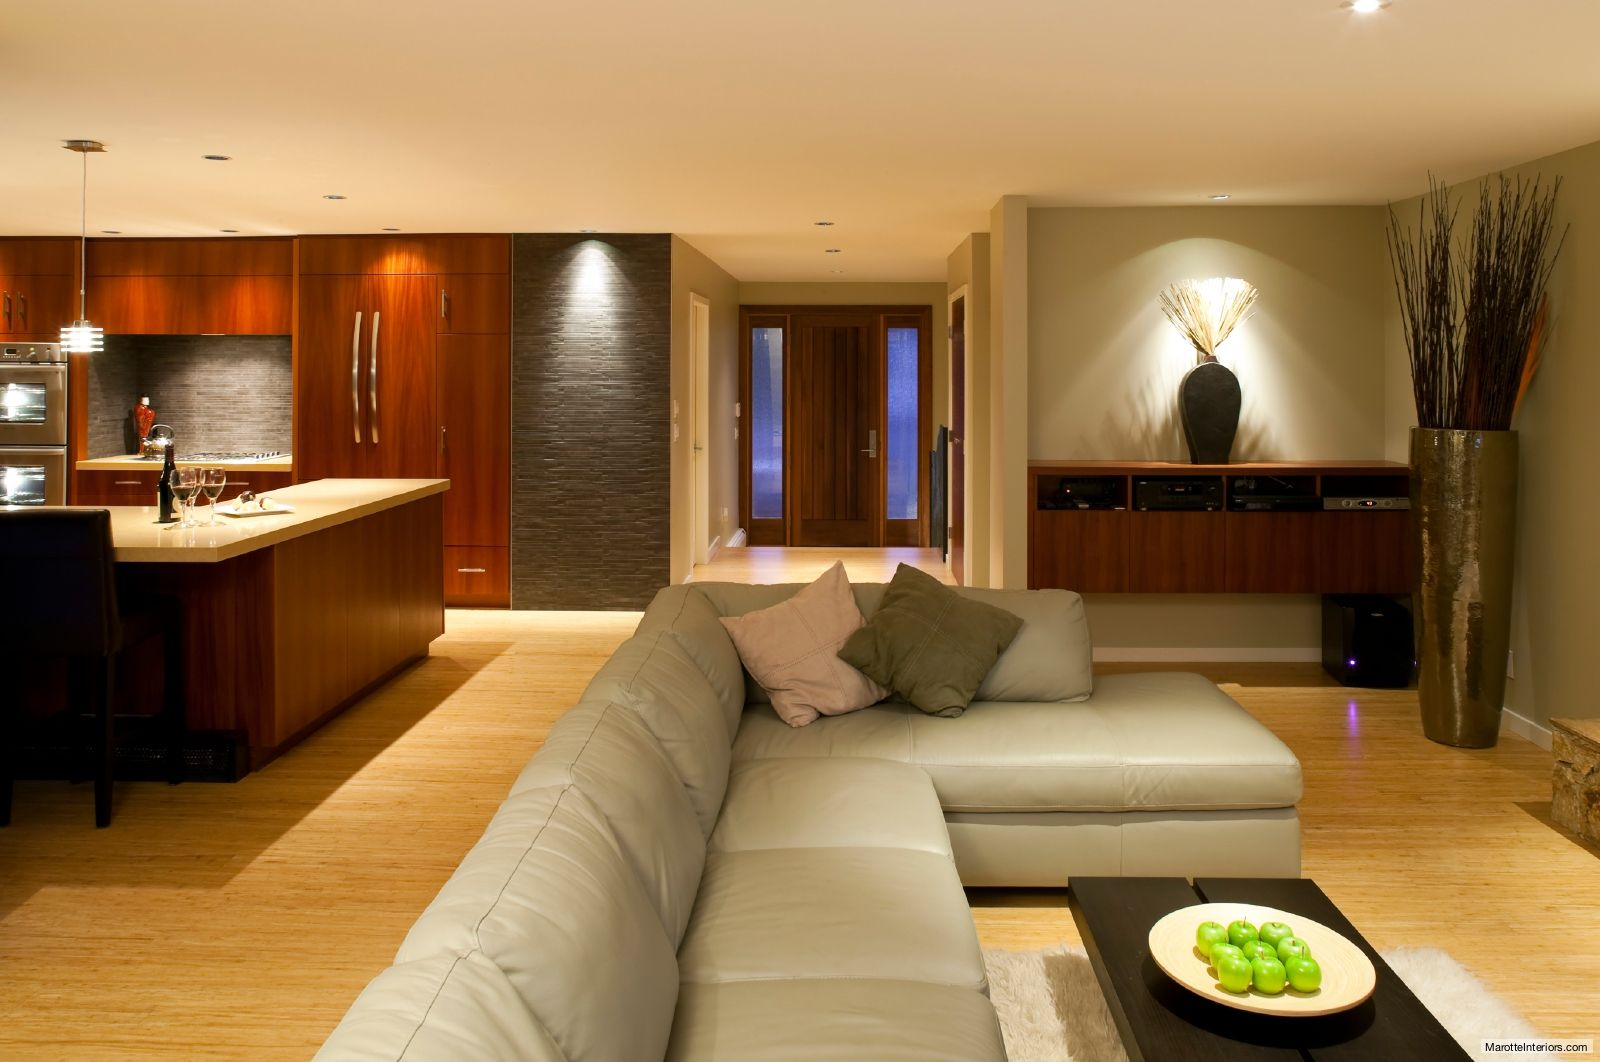 interior design for living room and kitchen - 1000+ images about Living oom on Pinterest Open living rooms ...